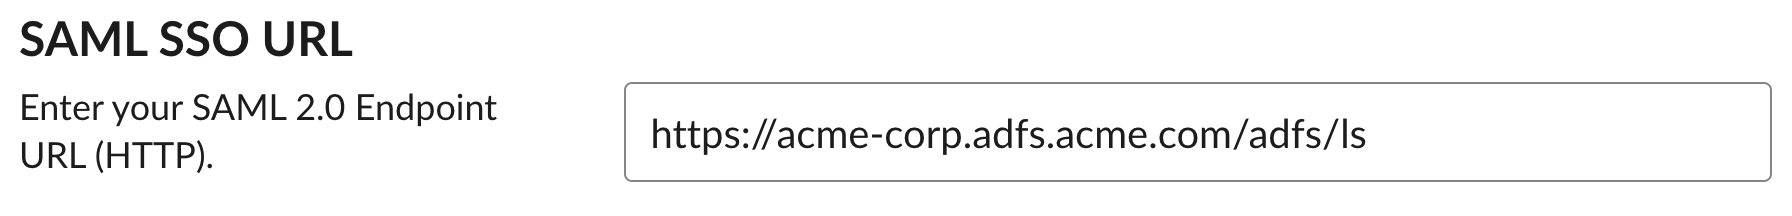 SAML SSO URL and text box with URL entered